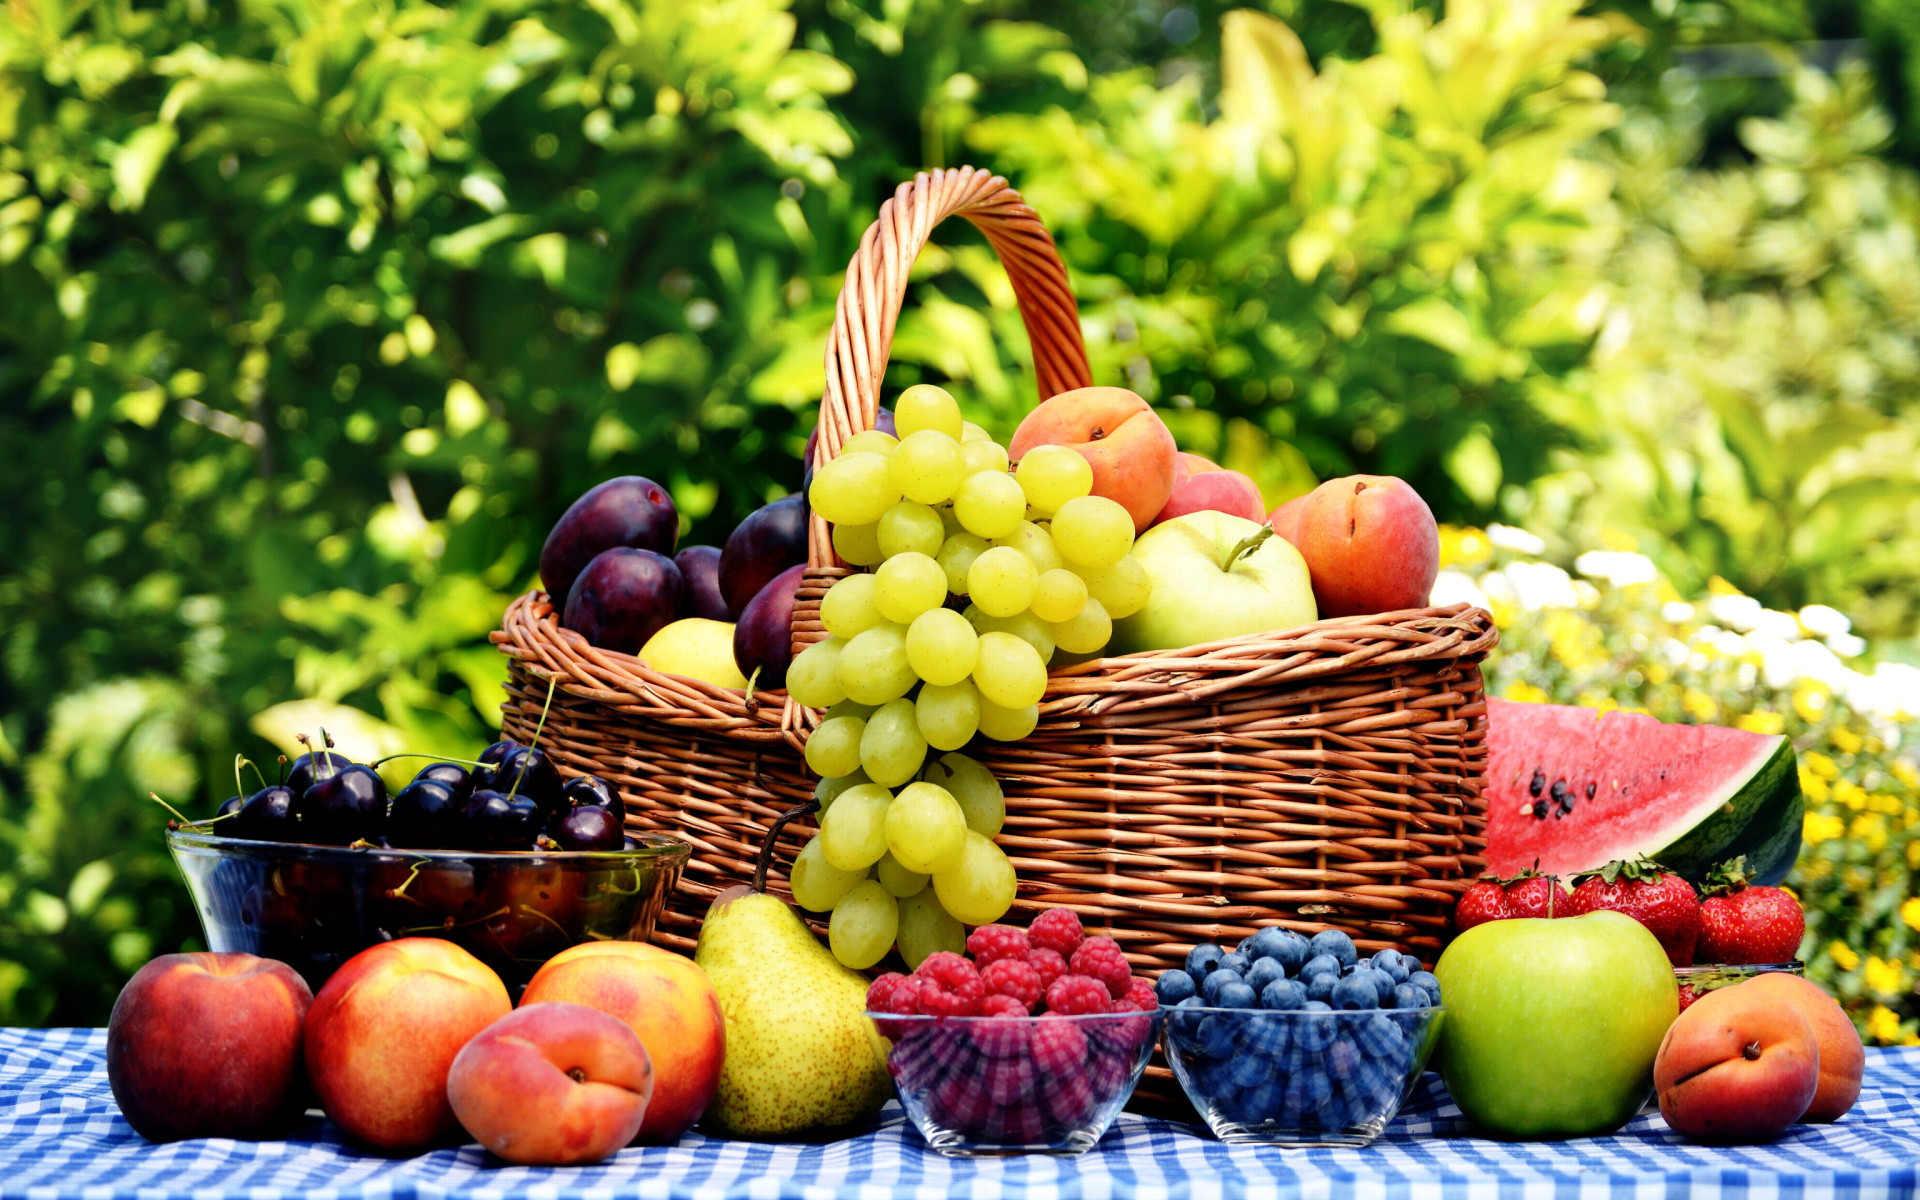 Organic Fruit Gift Basket Wallpaper For Widescreen Desktop